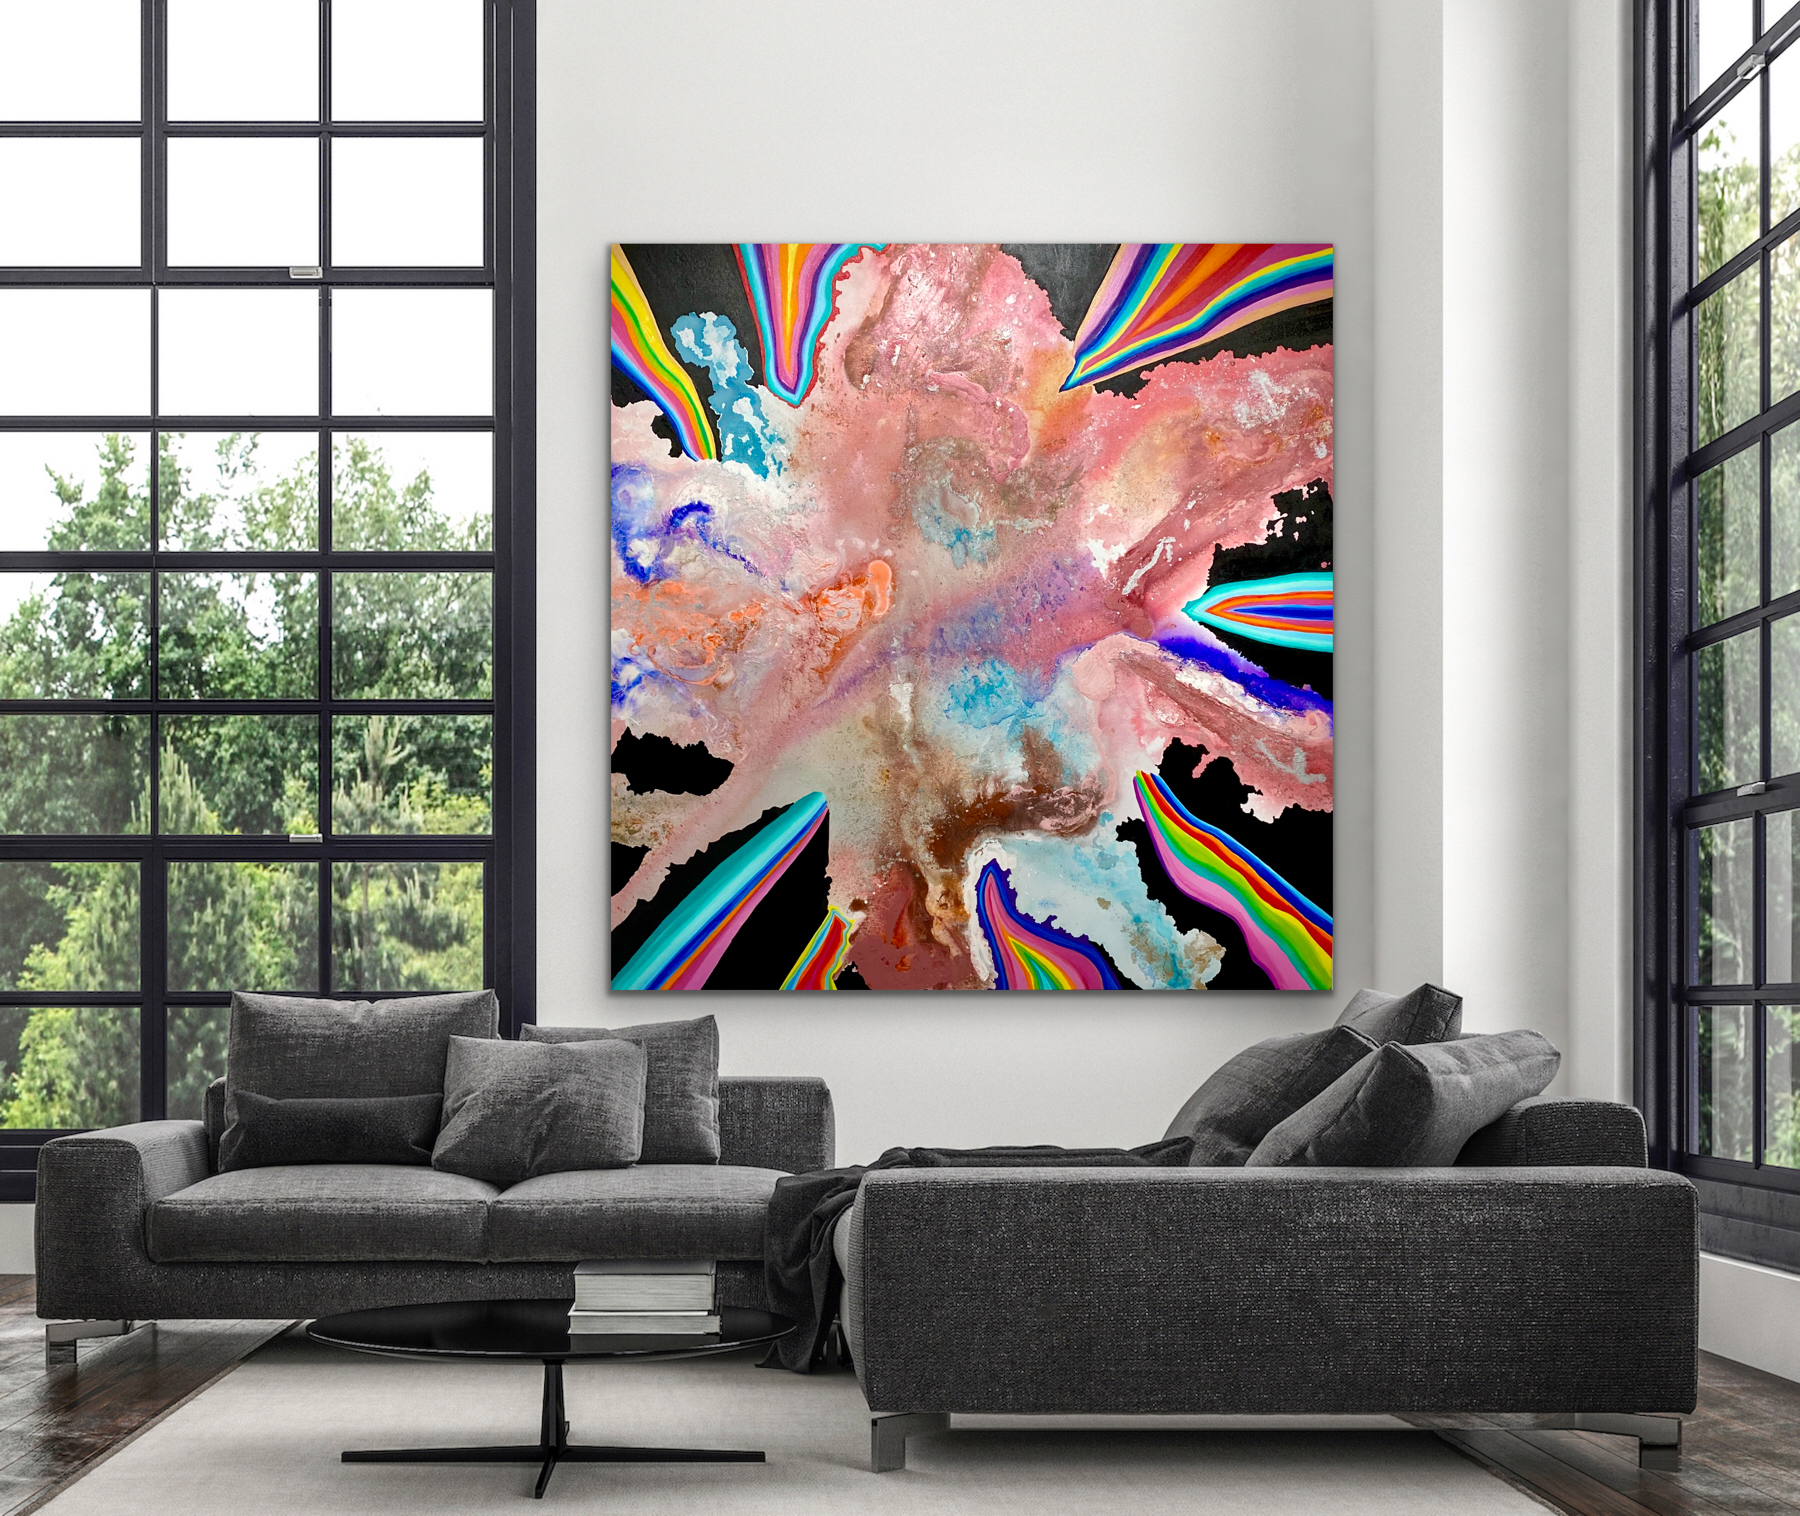 CHRISTI MERIL ART-STARDUST SOUL-DALLAS ABSTRACT EXPRESSIONIST-DALLAS ABSTRACT ARTIST-DALLAS LARGE ABSTRACT ART-2